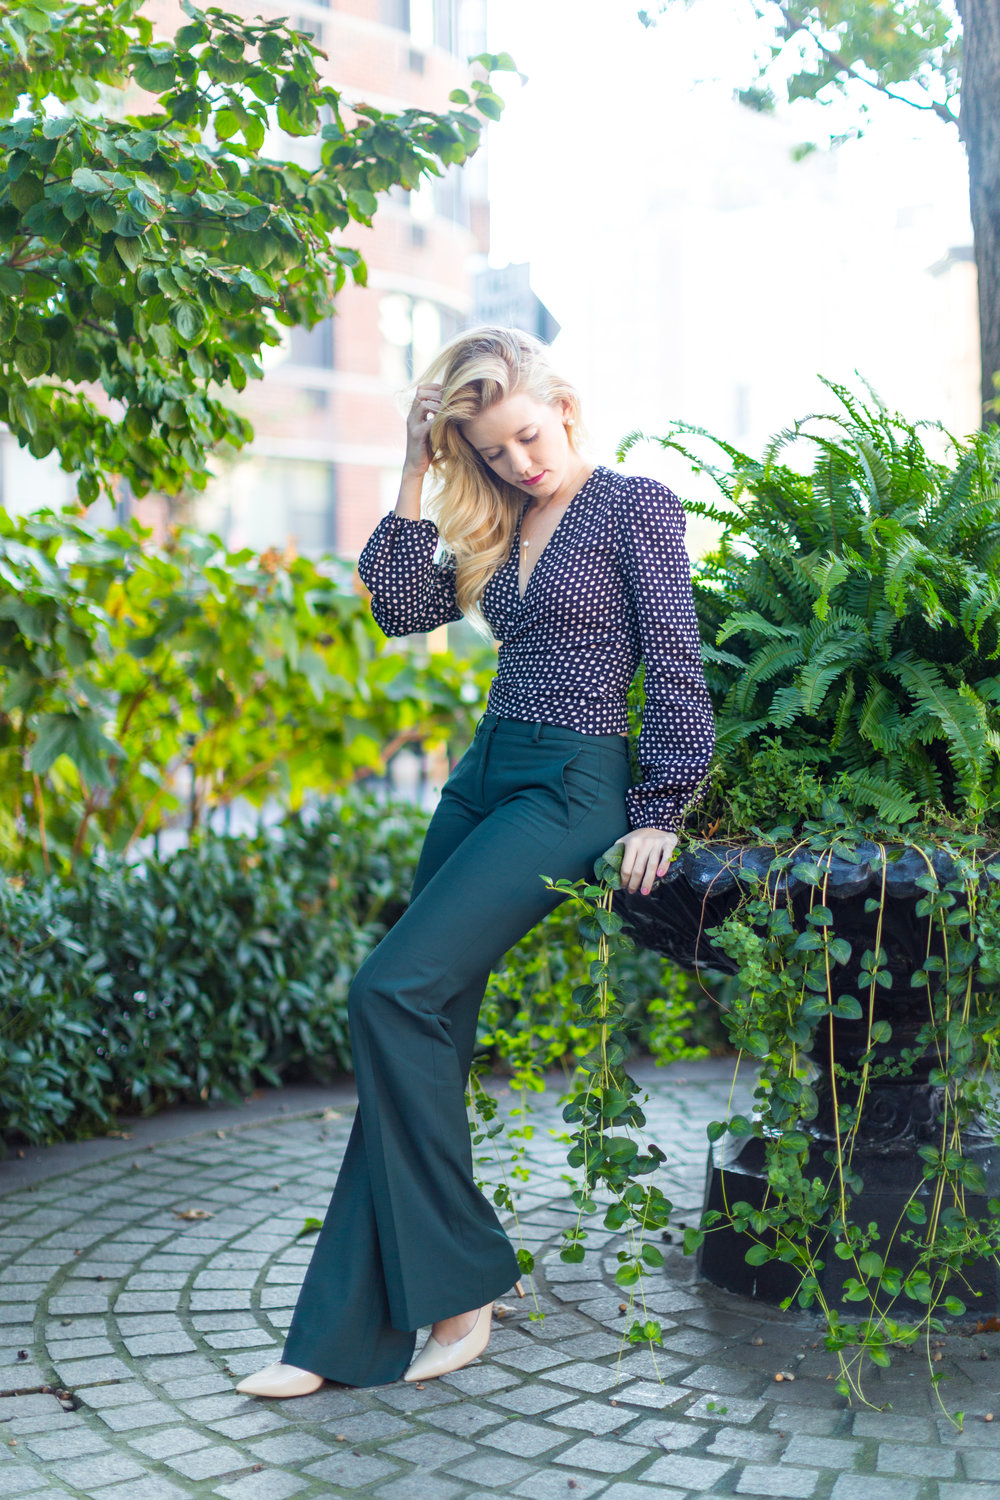 NYC Fall Fashion Trends Wrap Top Flare Pants-8.jpg